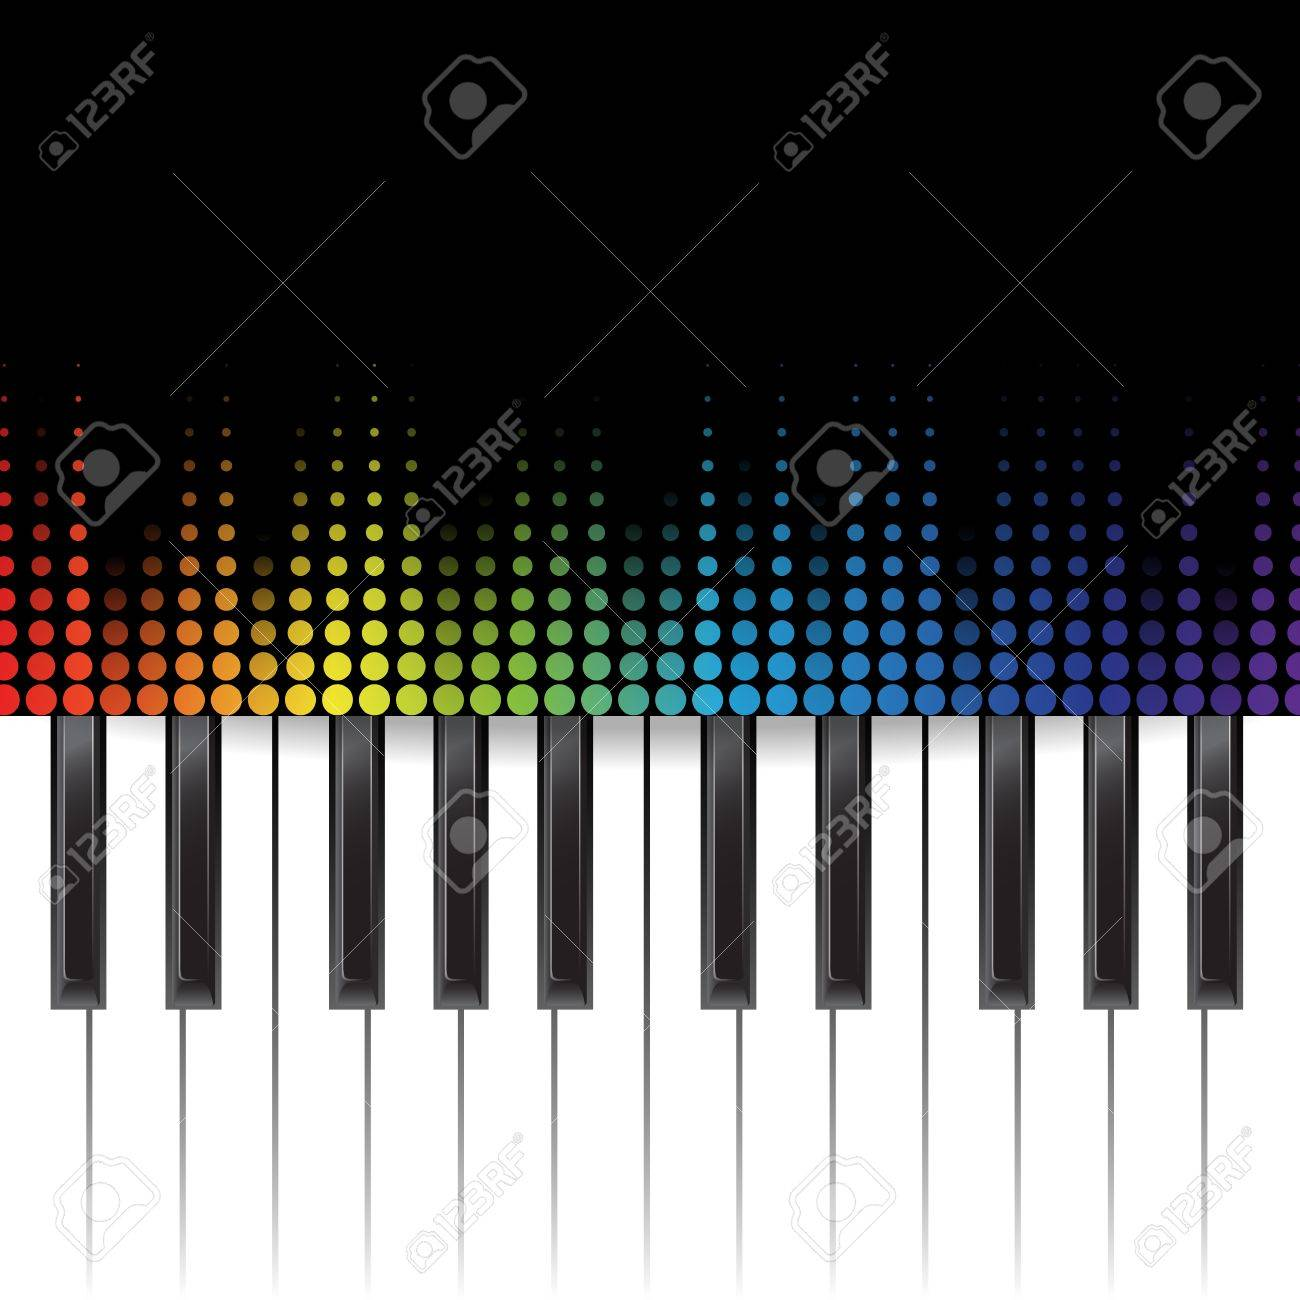 poster background template music piano keyboard can be used